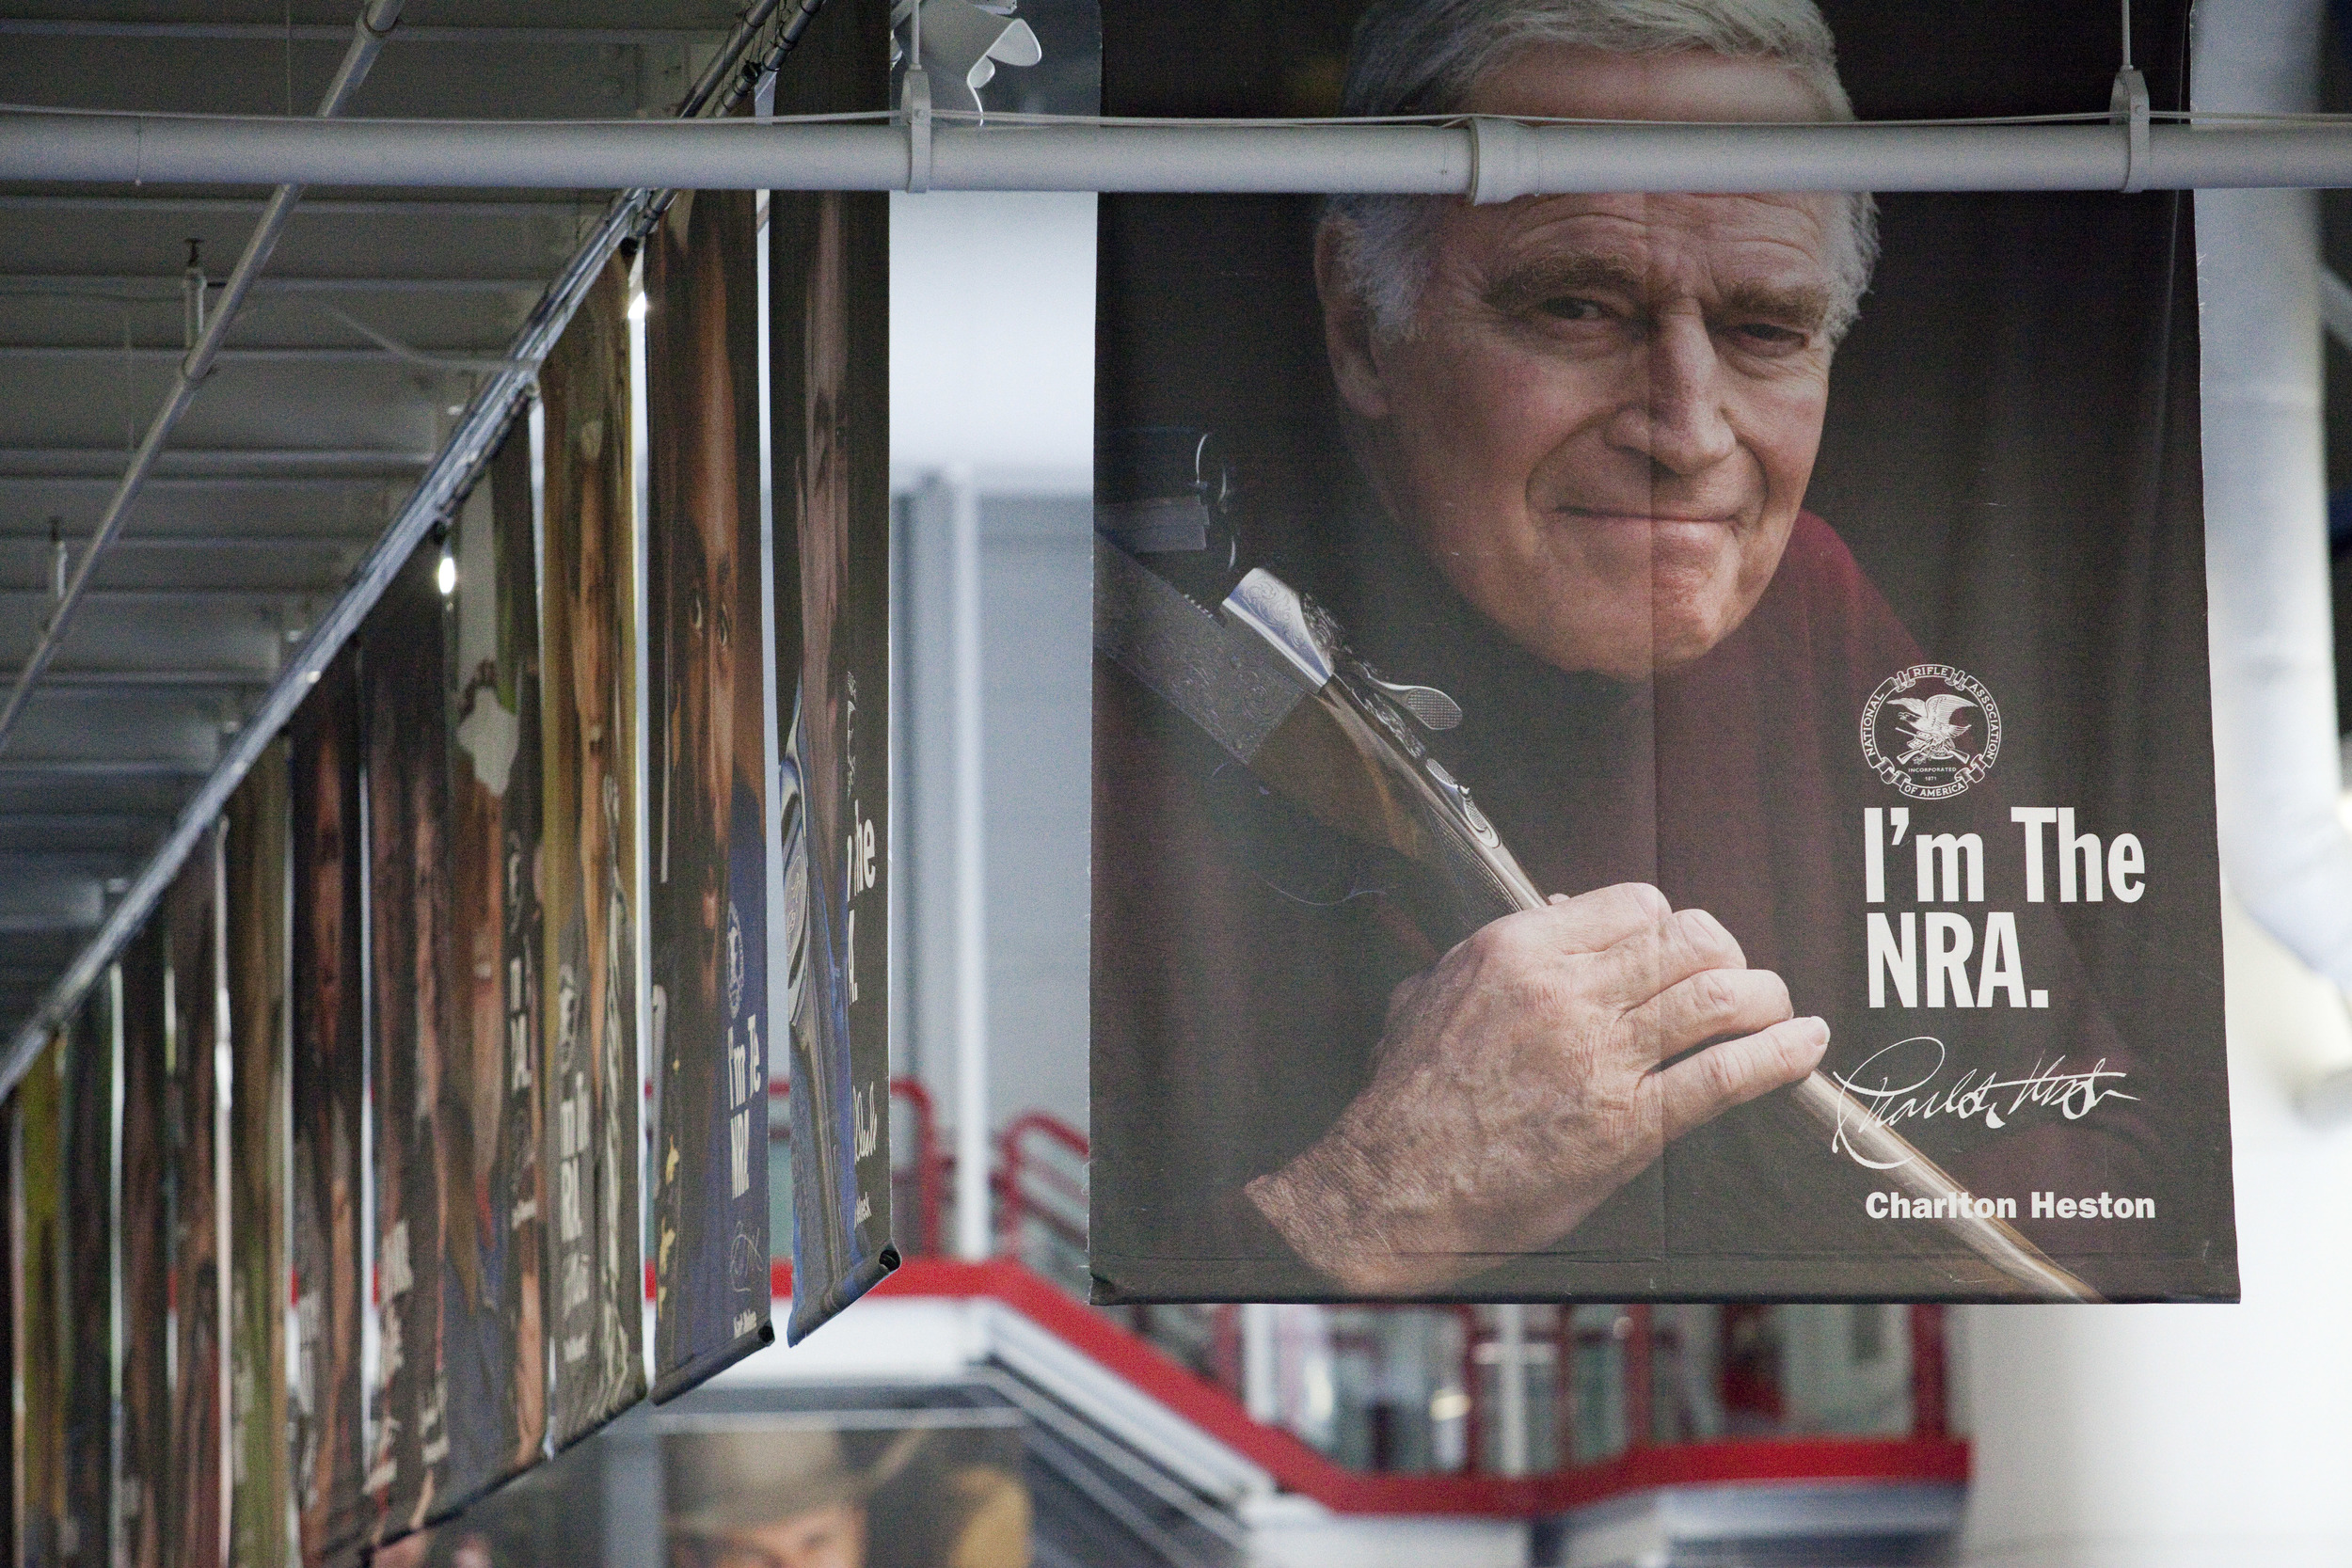 A poster of Charlton Heston, along with other celebrity members, hangs in the George R. Brown Center at the 2013 National Rifle Association Meeting and Exhibits May 2, 2013 in Houston.